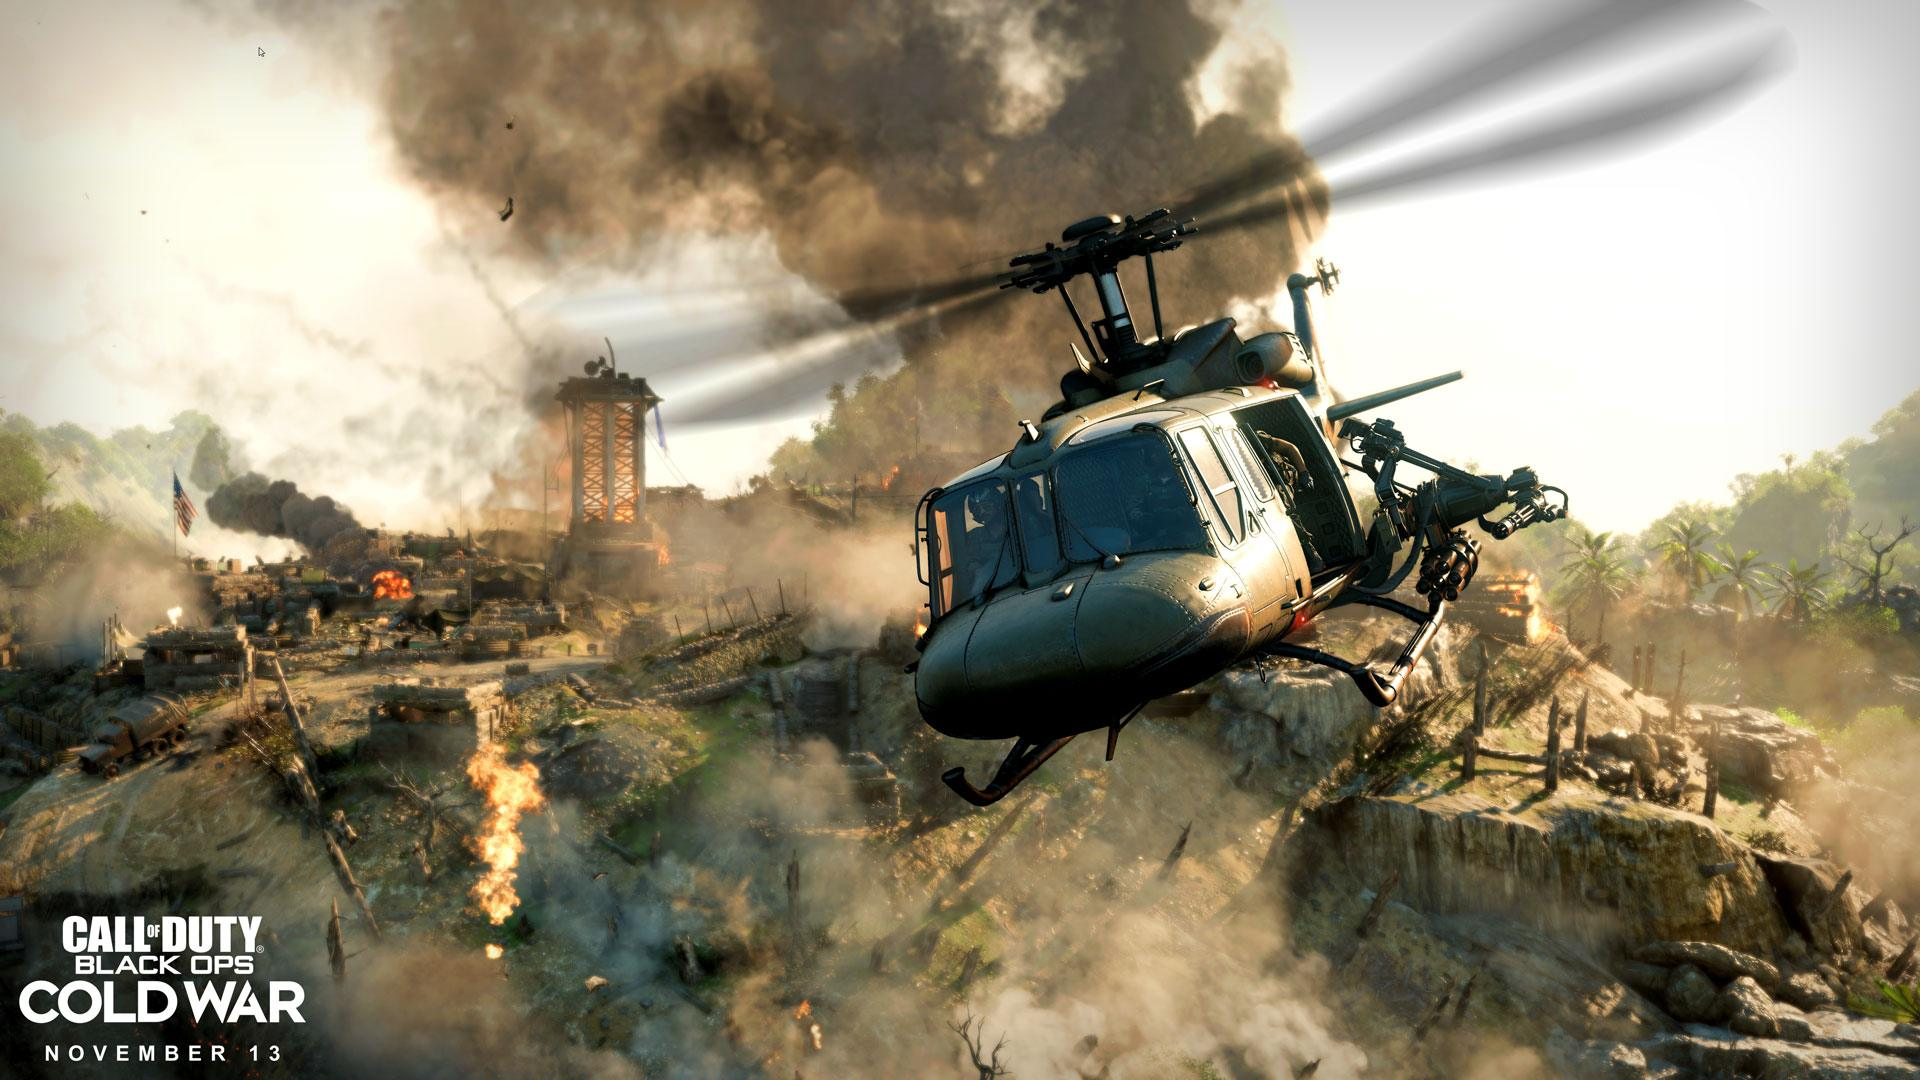 Call of Duty Black Ops Cold War crashing on PC